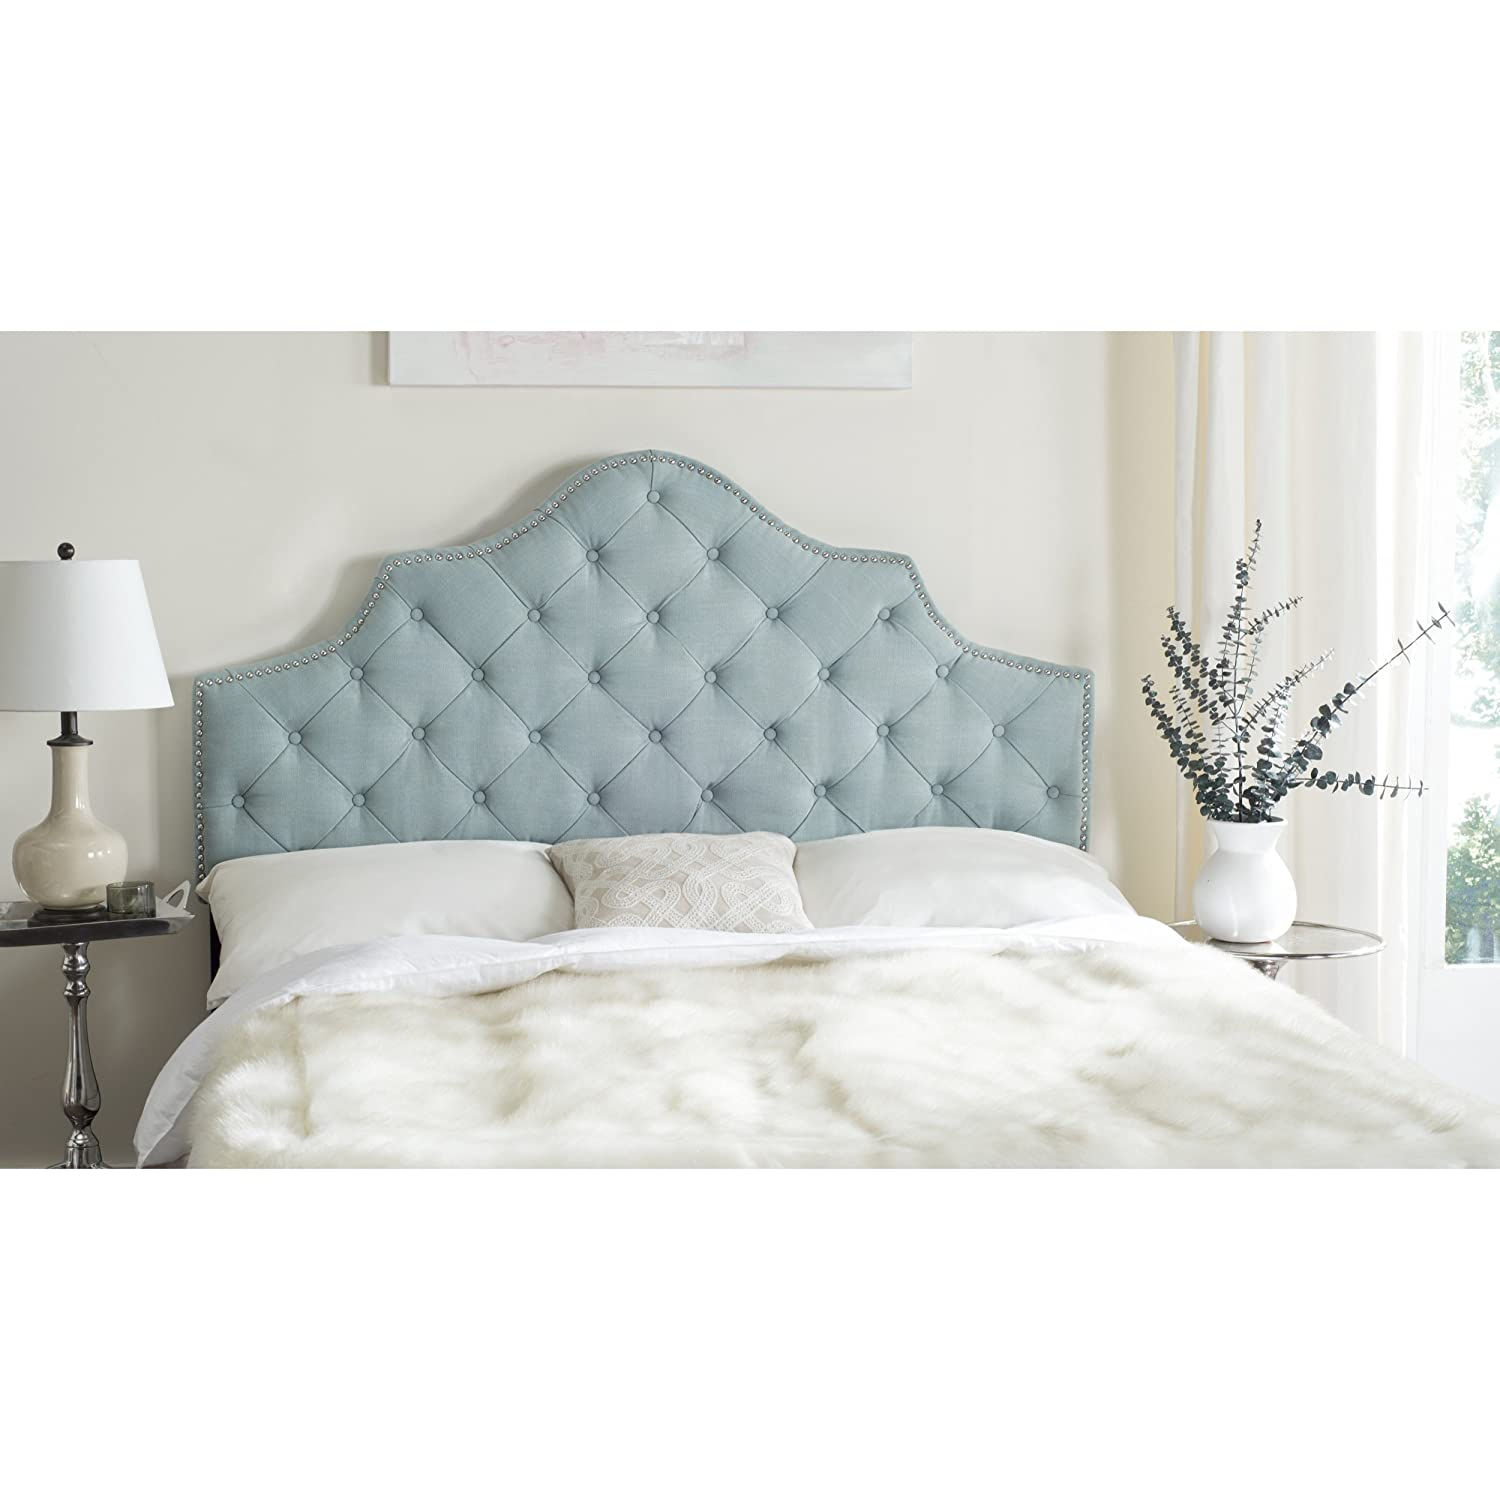 ip headboard creek walmart bookcase com white sauder soft queen full shoal